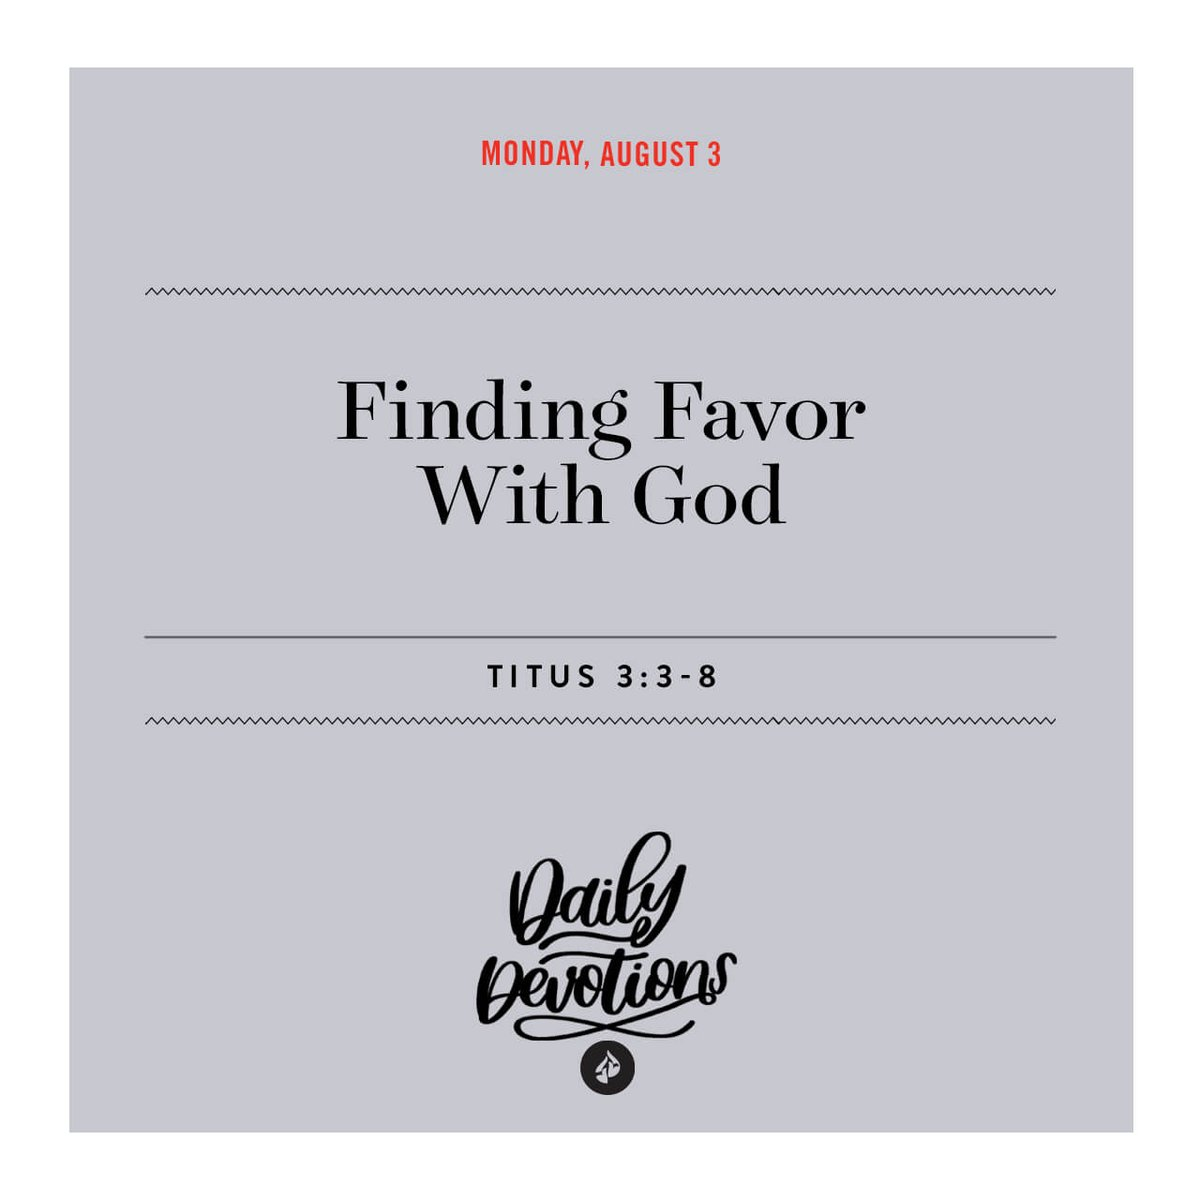 We could never earn Gods favor on our own, so Jesus gave us His righteousness. #Devotional ow.ly/Il7R30r1XQ3